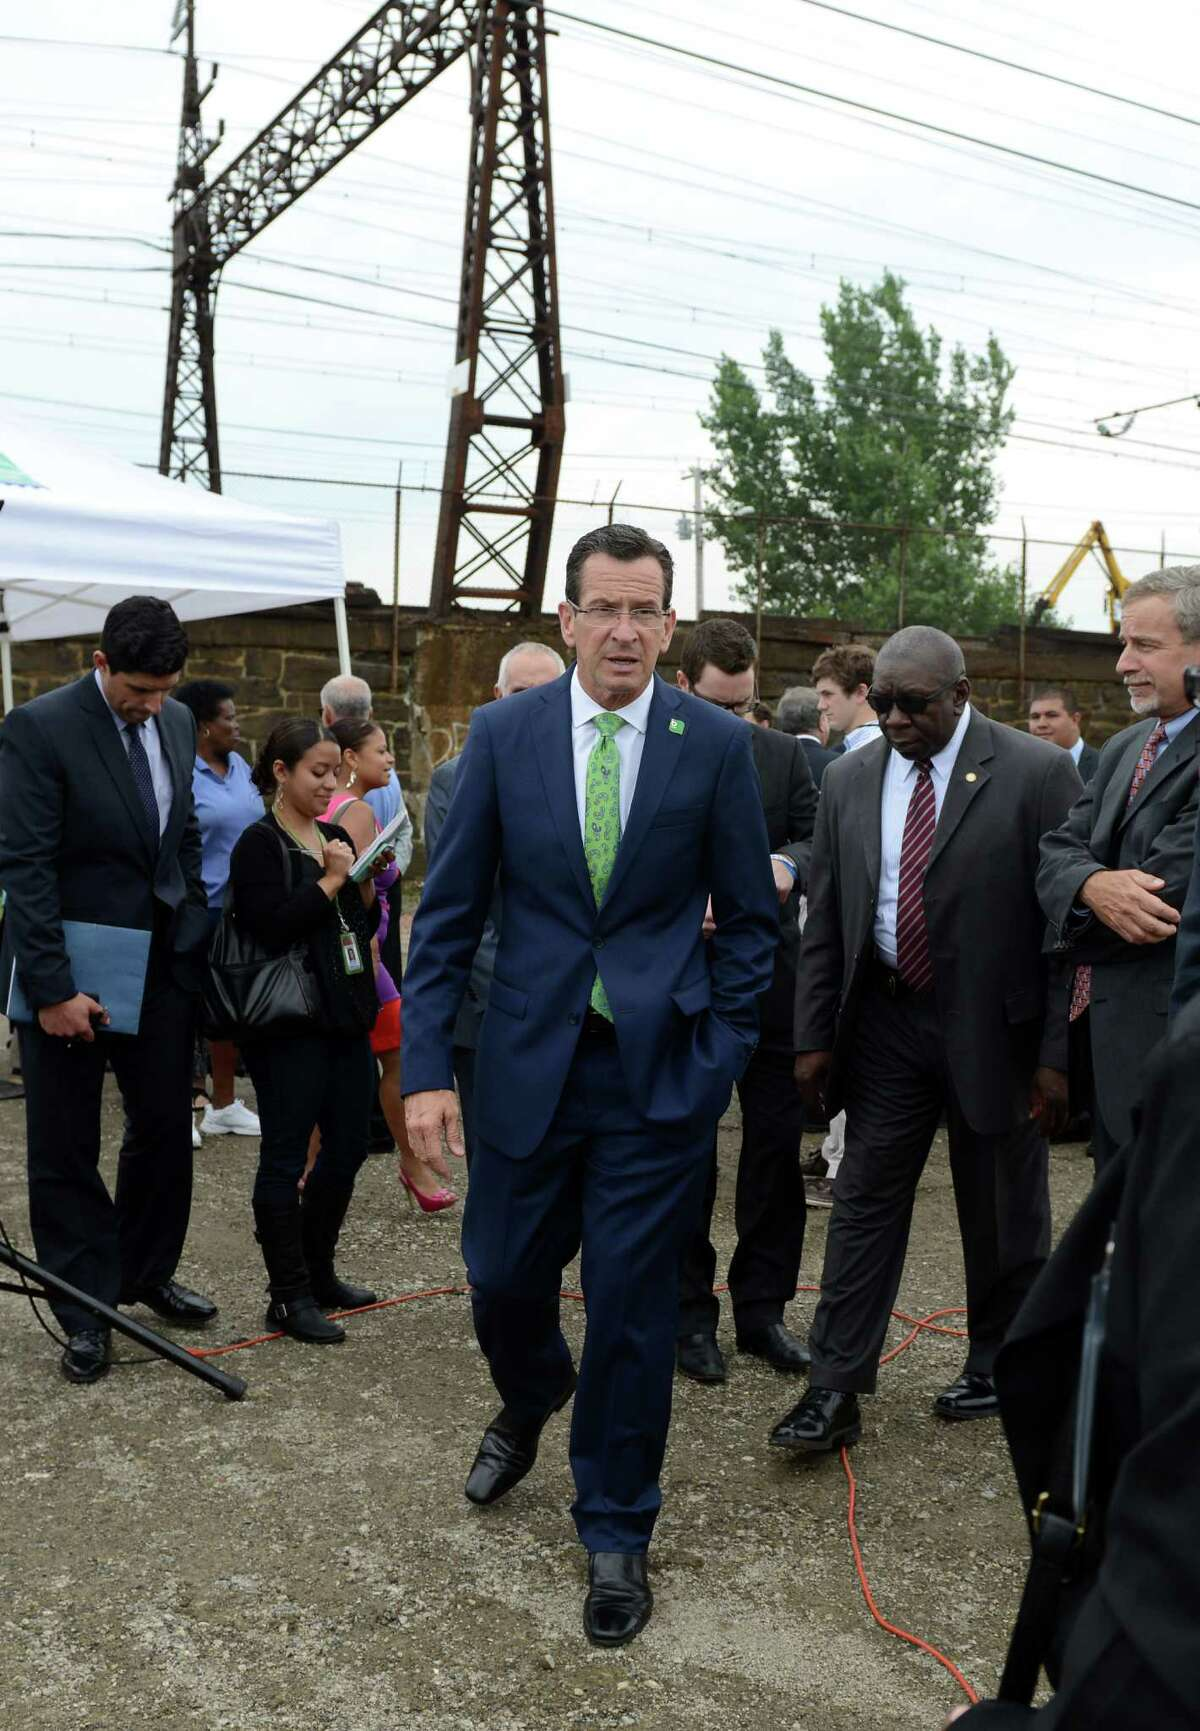 Gov. Dannel P. Malloy was in Bridgeport Wednesday, July 16, 2014, to announce funding for a new train station on Bridgeport's East Side. The State Bond Commission will approve $2.75 million for the design of a second train station to be built on the site of the former Remington Arms factory on the south side of Barnum Avenue which the state had previously given the city $2 million to demolish.